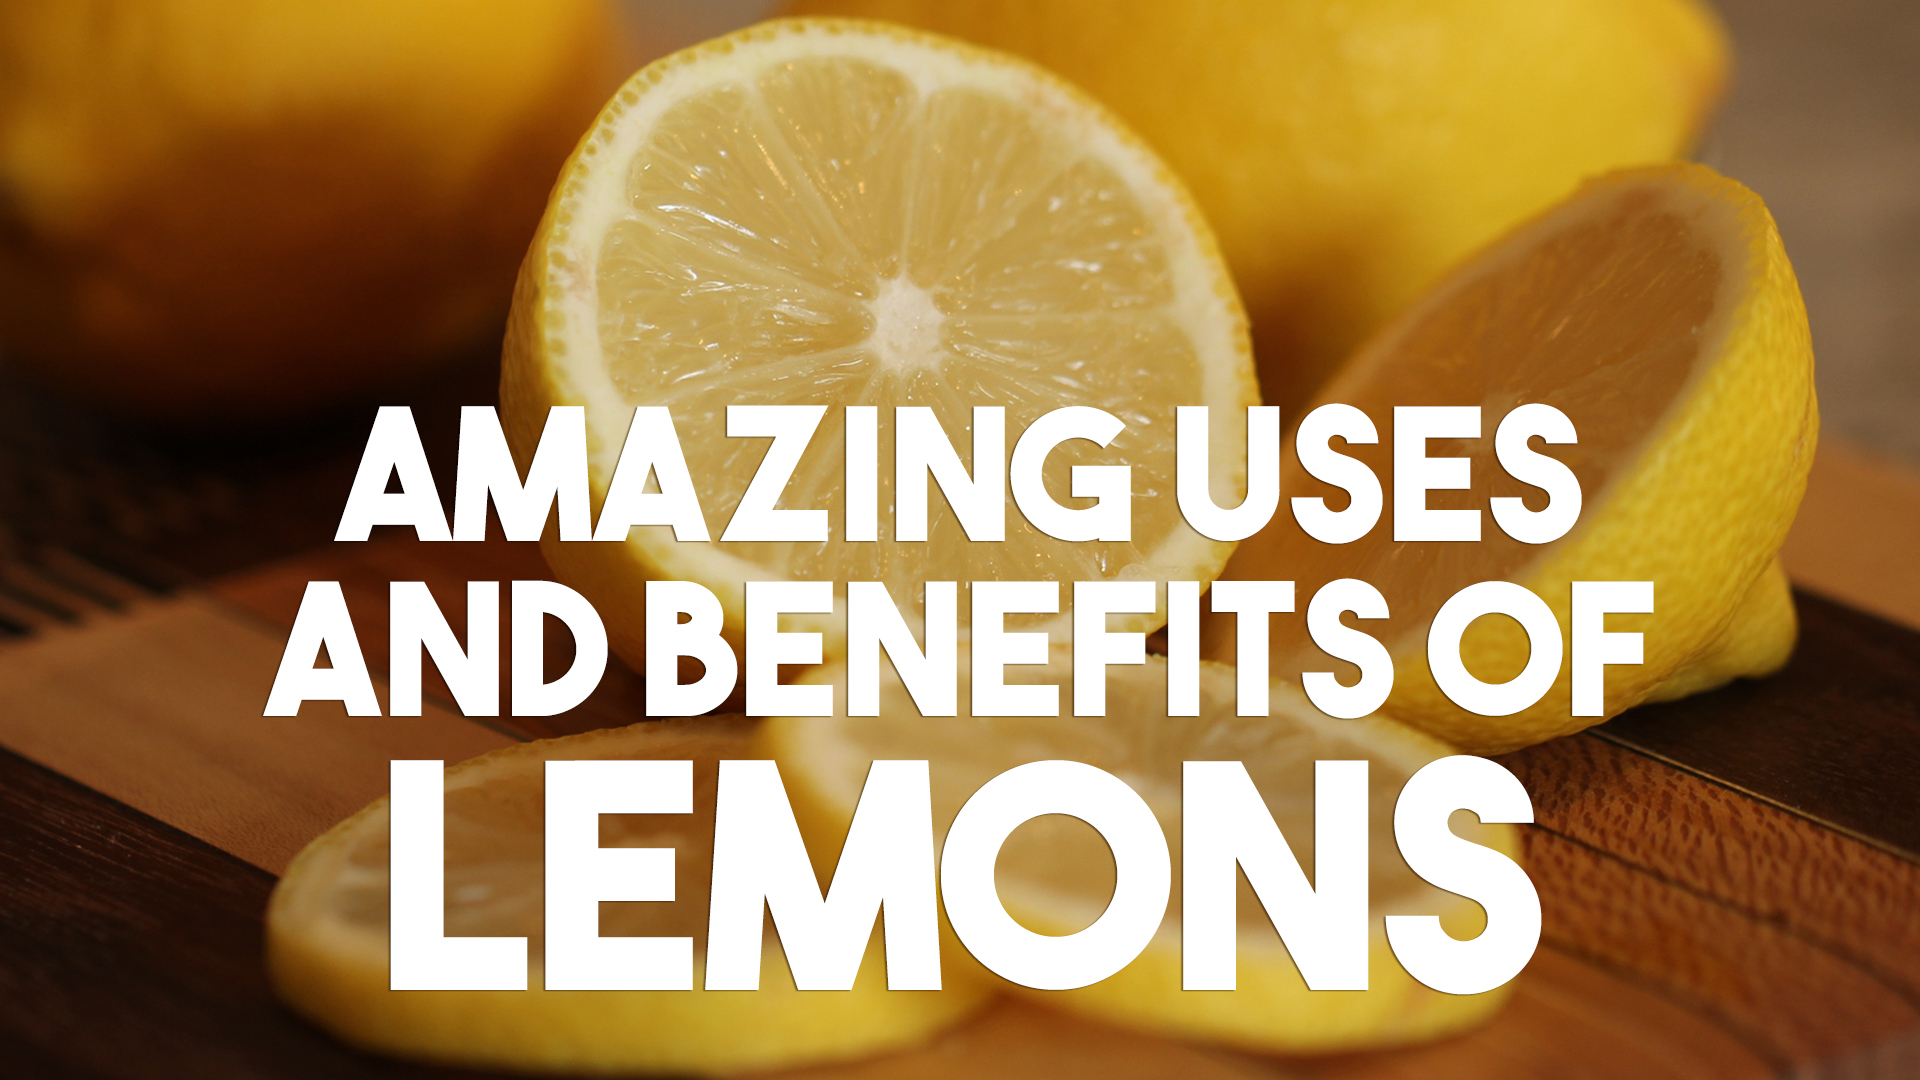 Amazing Uses And Benefits Of Lemons